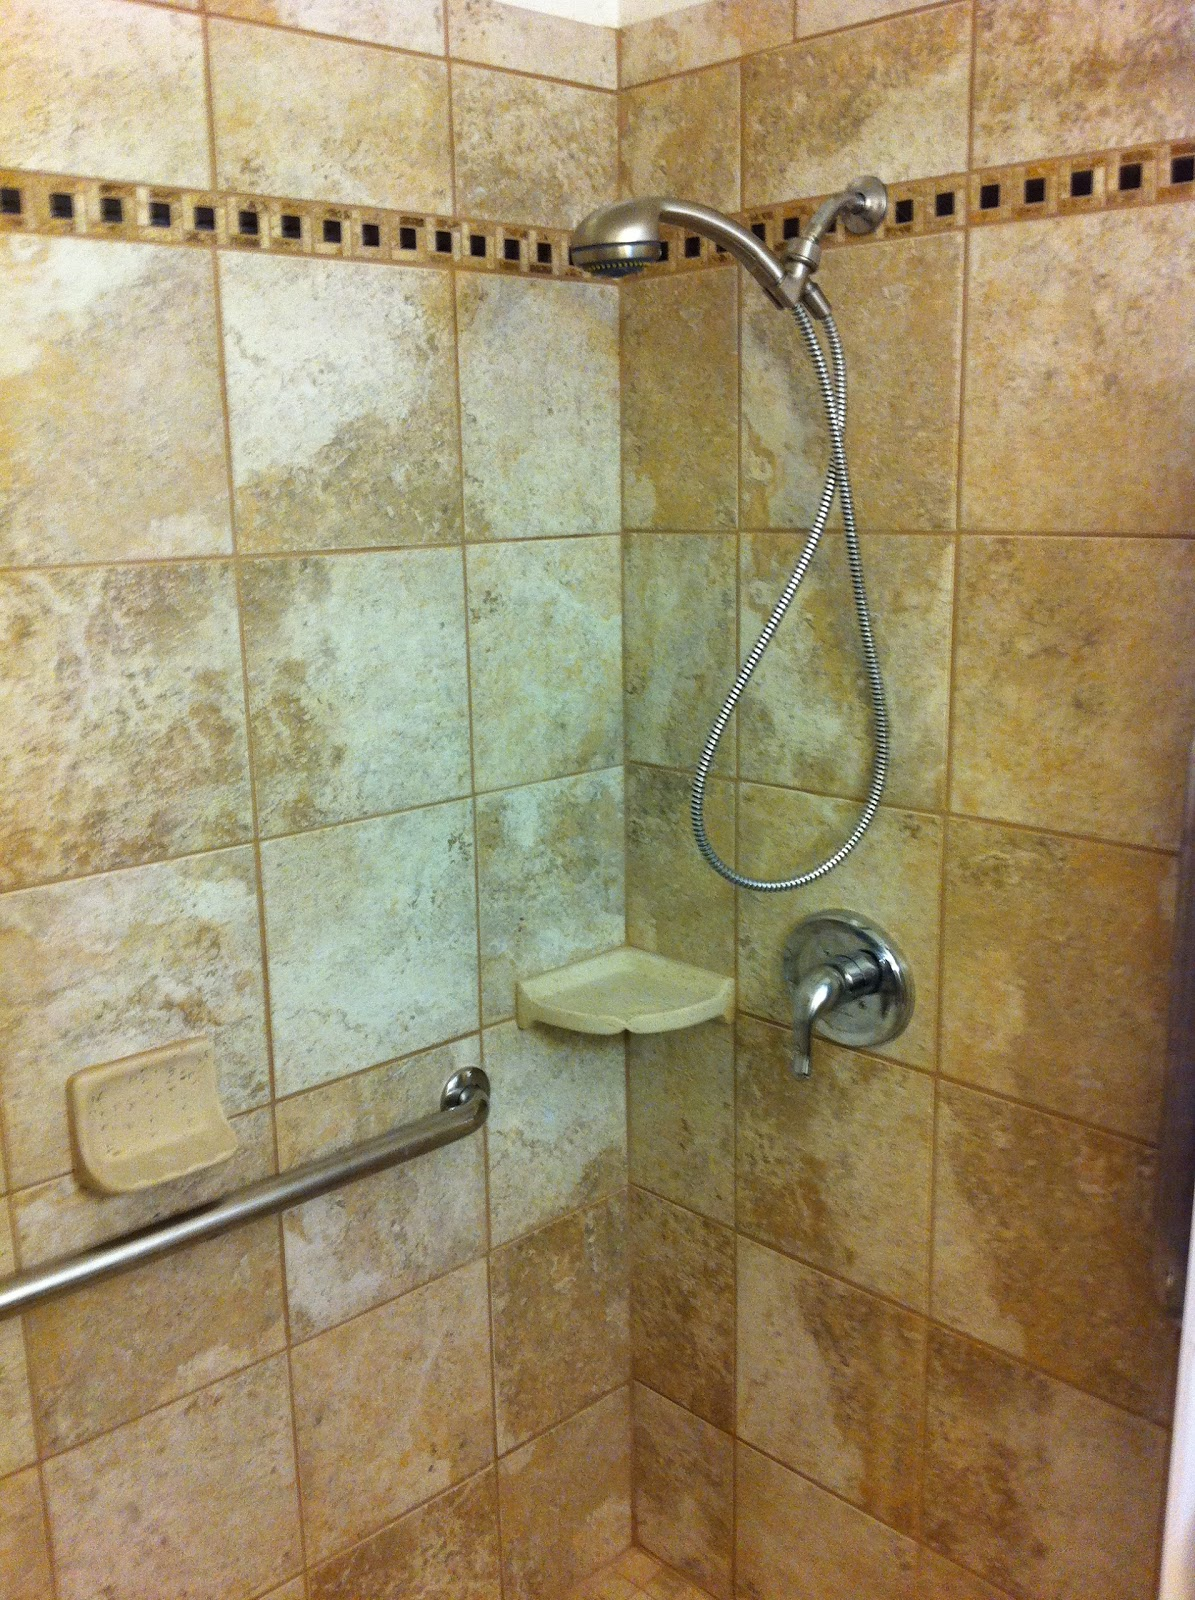 Lapham Construction: Bathroom Remodel With Custom Shower ...